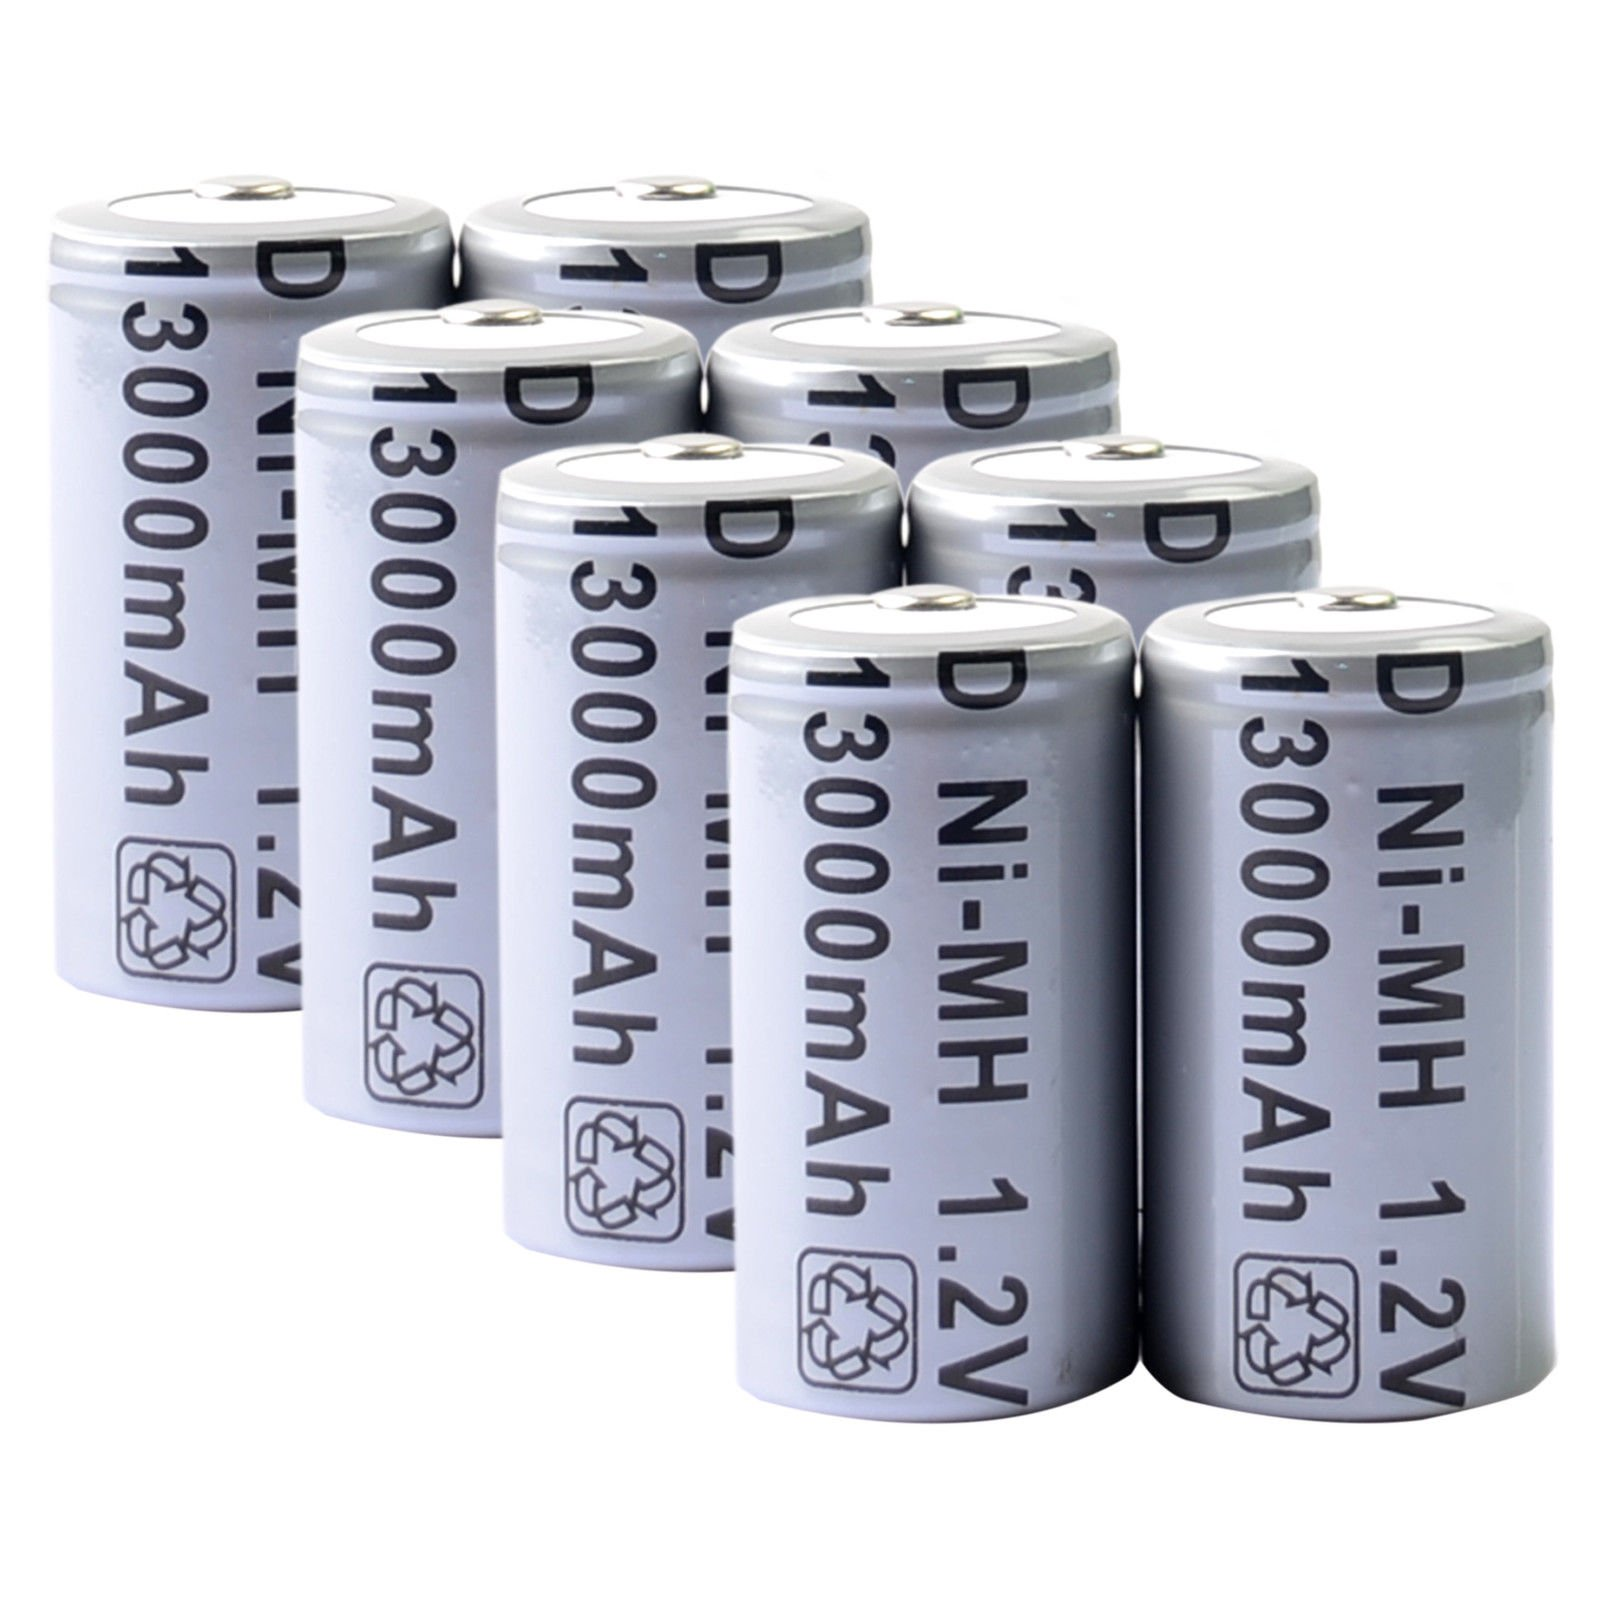 Toyofmine 8pcs D Size Rechargeable Battery D Type 13000mAh 1.2V Ni-MH Cell Grey by toyofmine